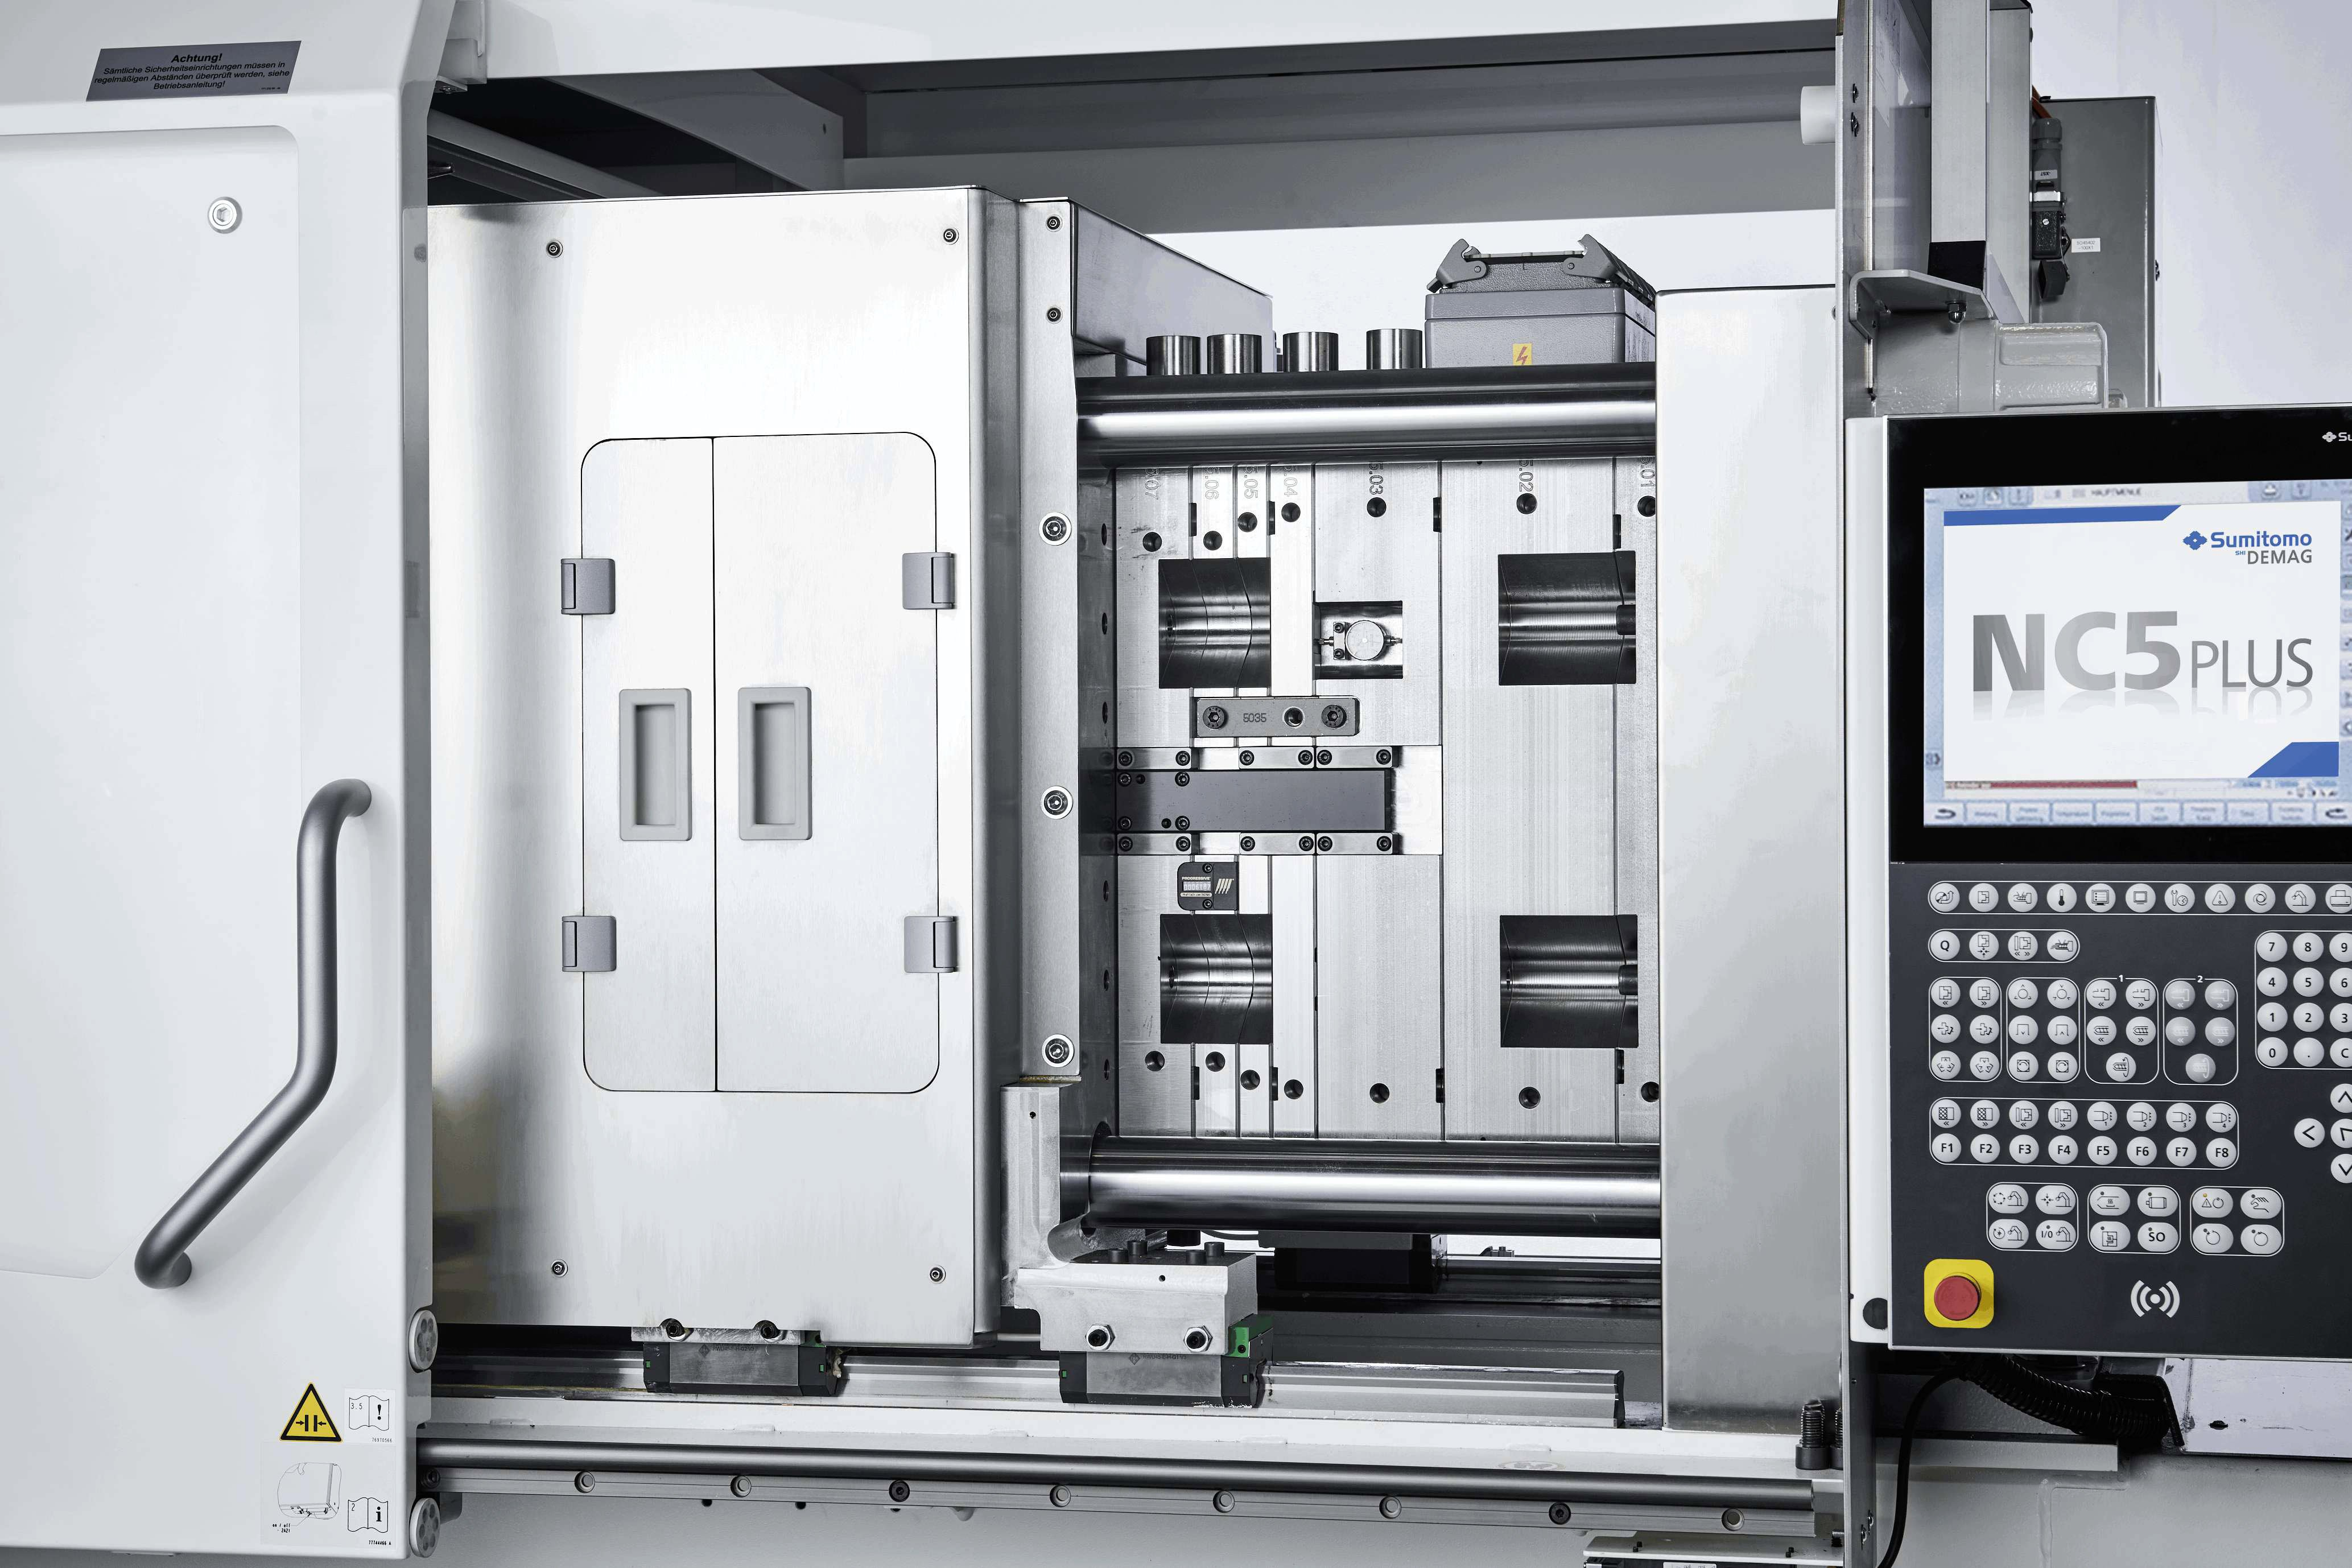 Sumitomo (SHI) Demag Plastics Machinery to reveal IntElect S medical